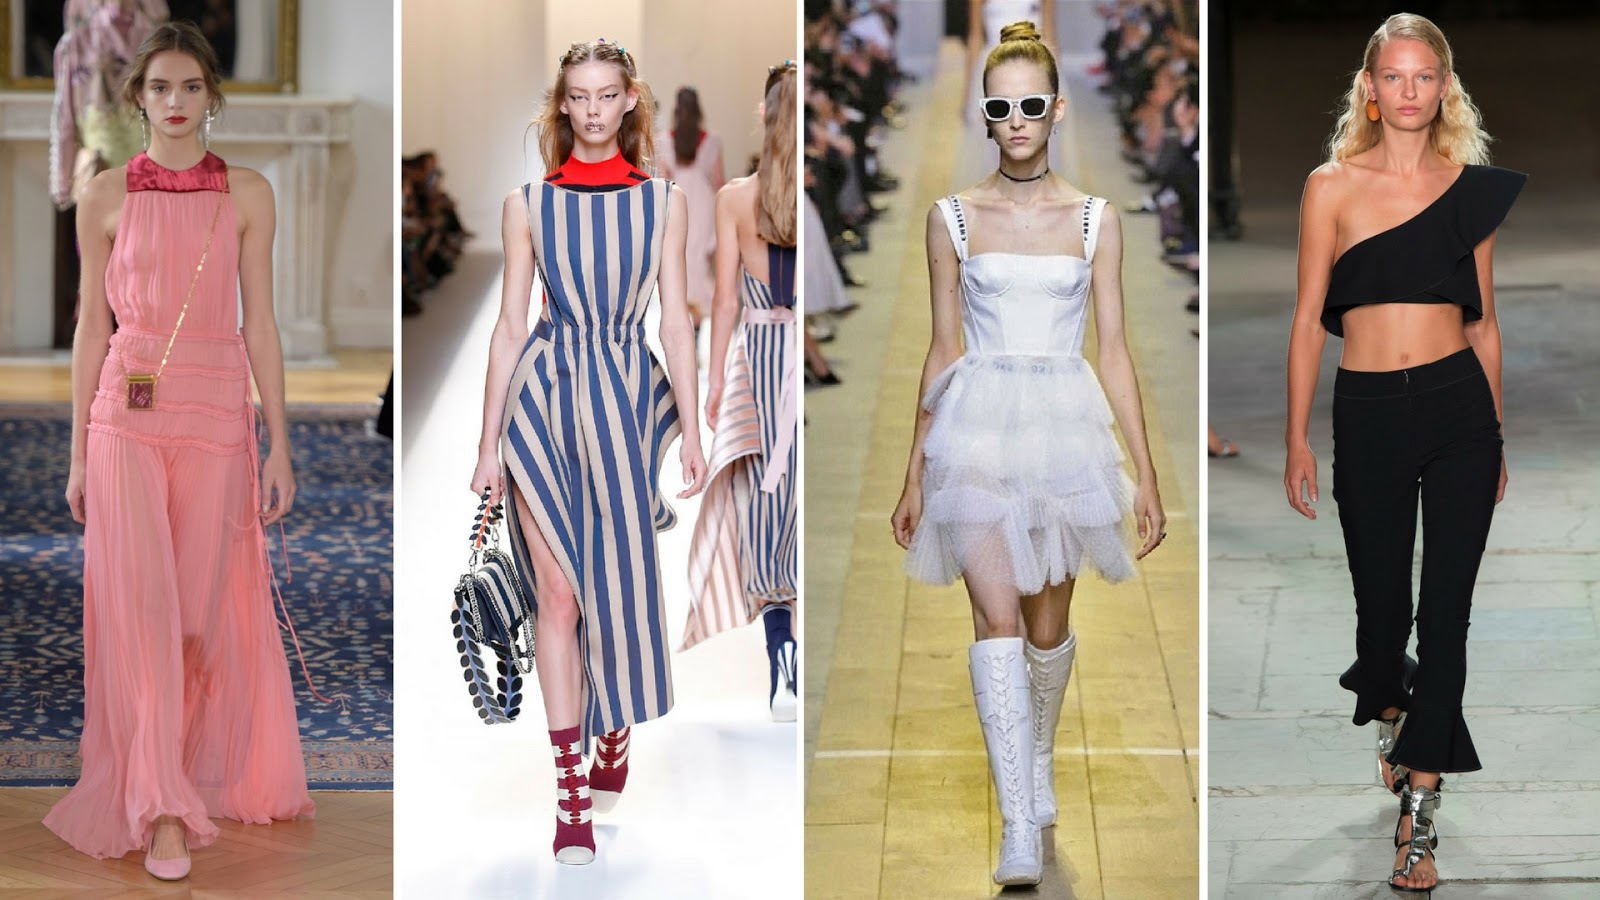 The new spring shop on Fashion Need and spring's 2017 hottest trends, spring 2017 follow, spring 2017 must have, spring 2017 trends shows, fashion need, Valentina Rago, one shouldered pieces, high waist trend, pink trend, seaside stripes, fashion need spring shop